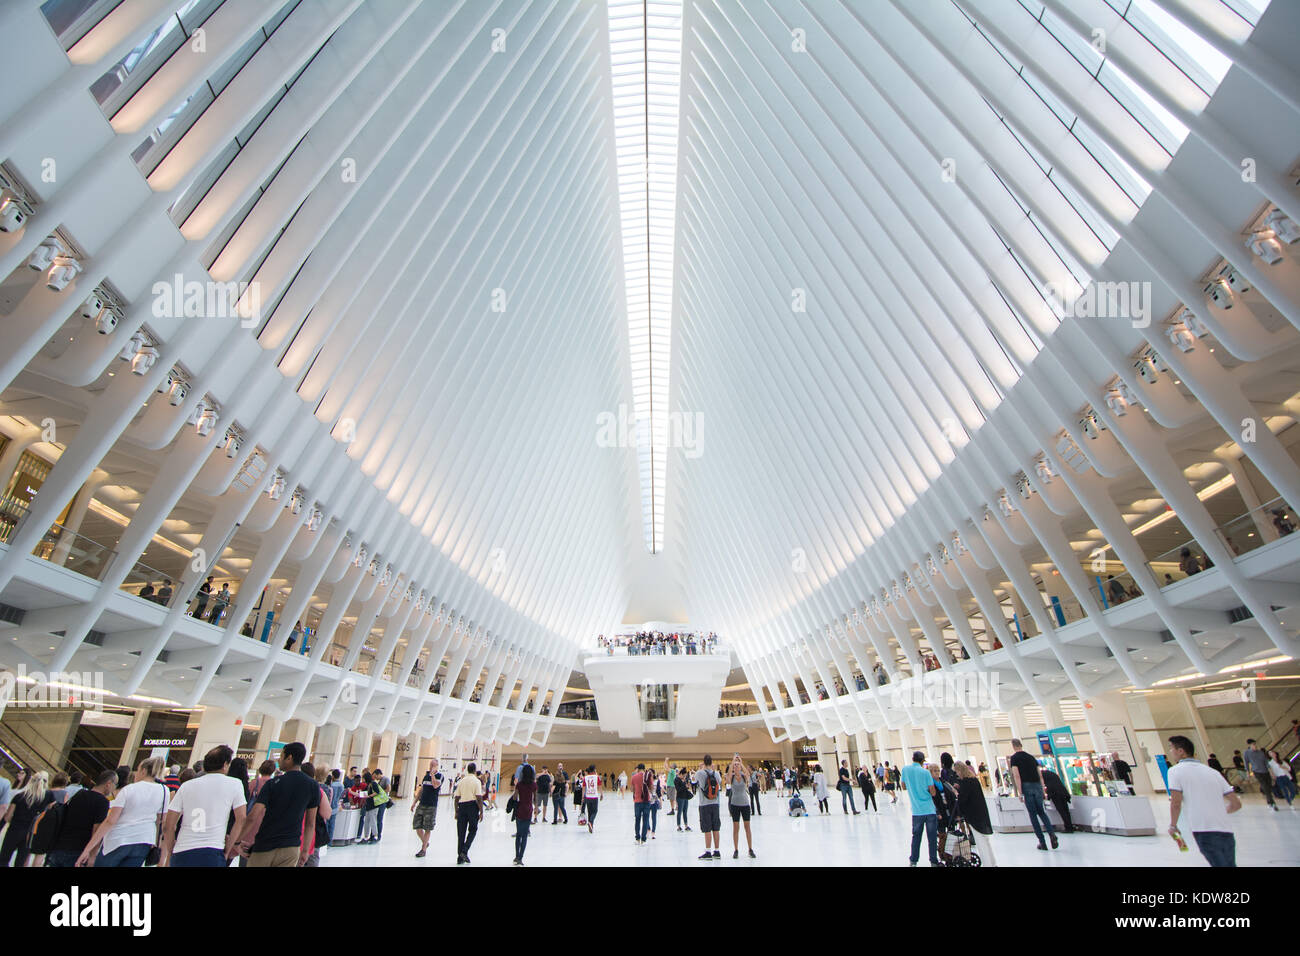 L'impressionnante architecture de l'Oculus au World Trade Center transportation hub à New York, United Photo Stock